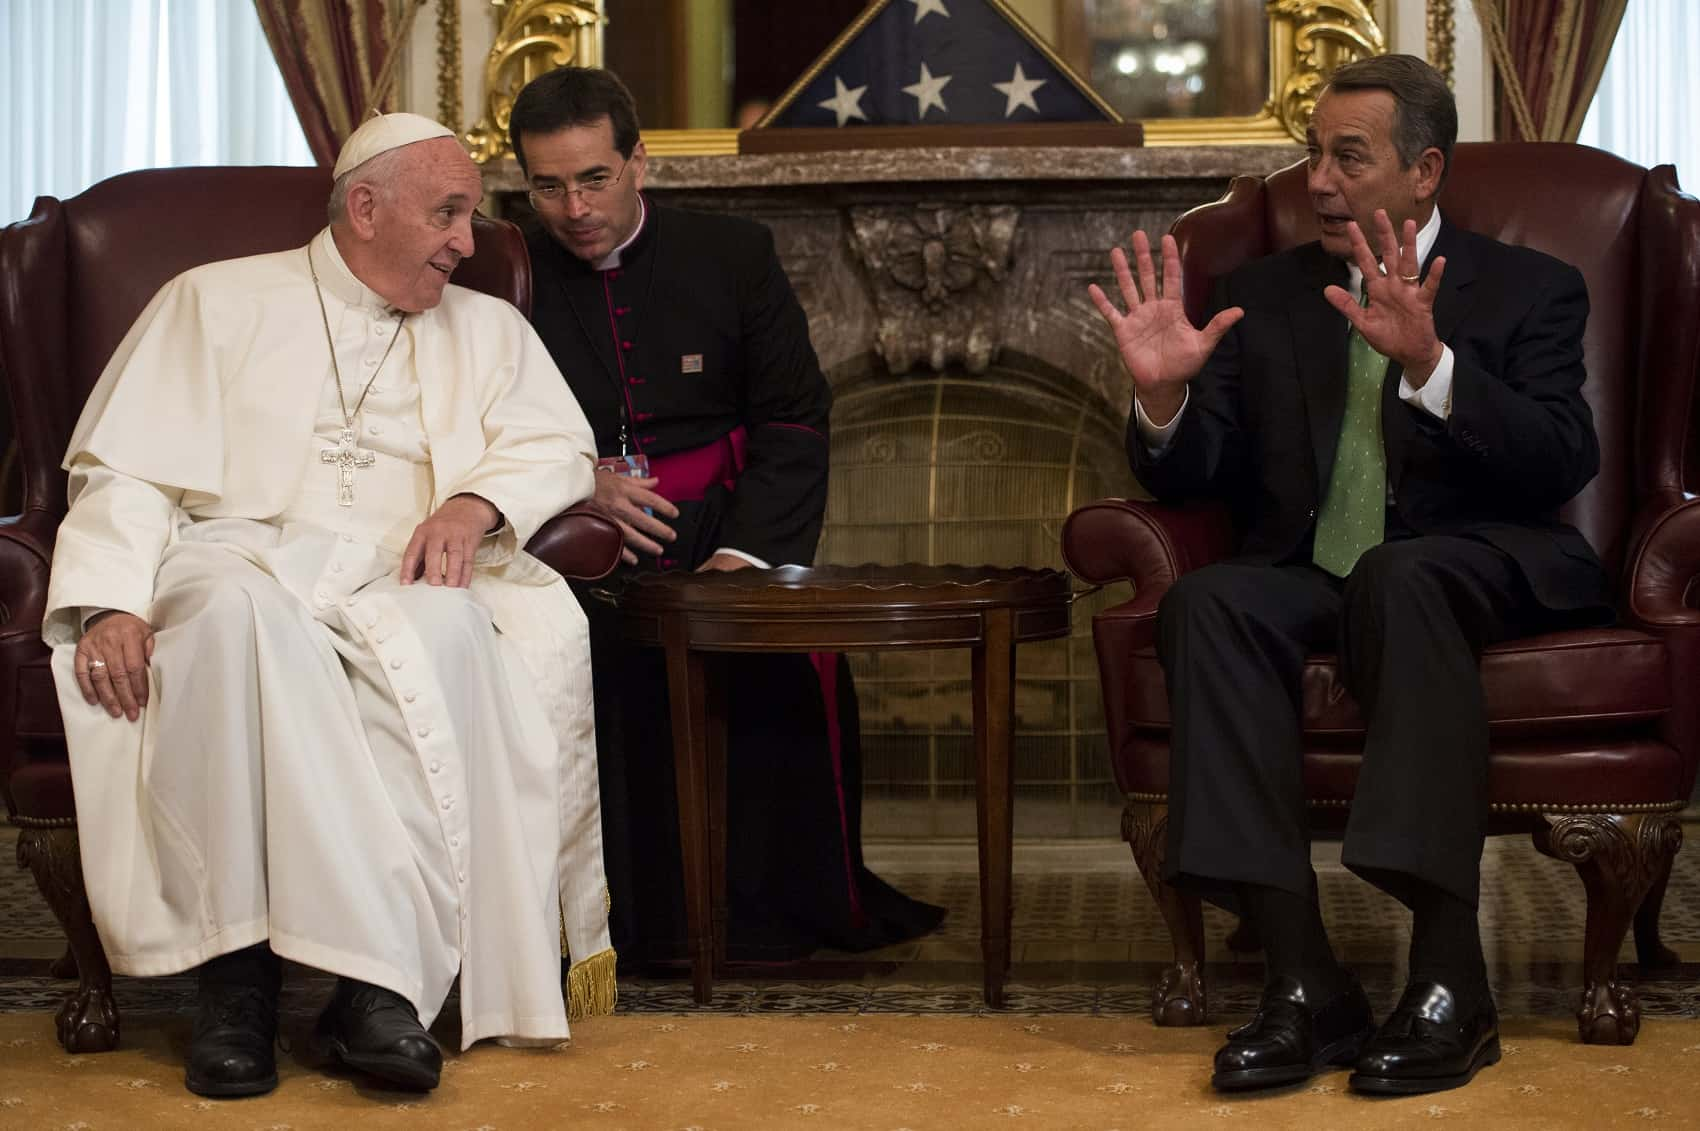 Speaker of the House John Boehner speaks with Pope Francis